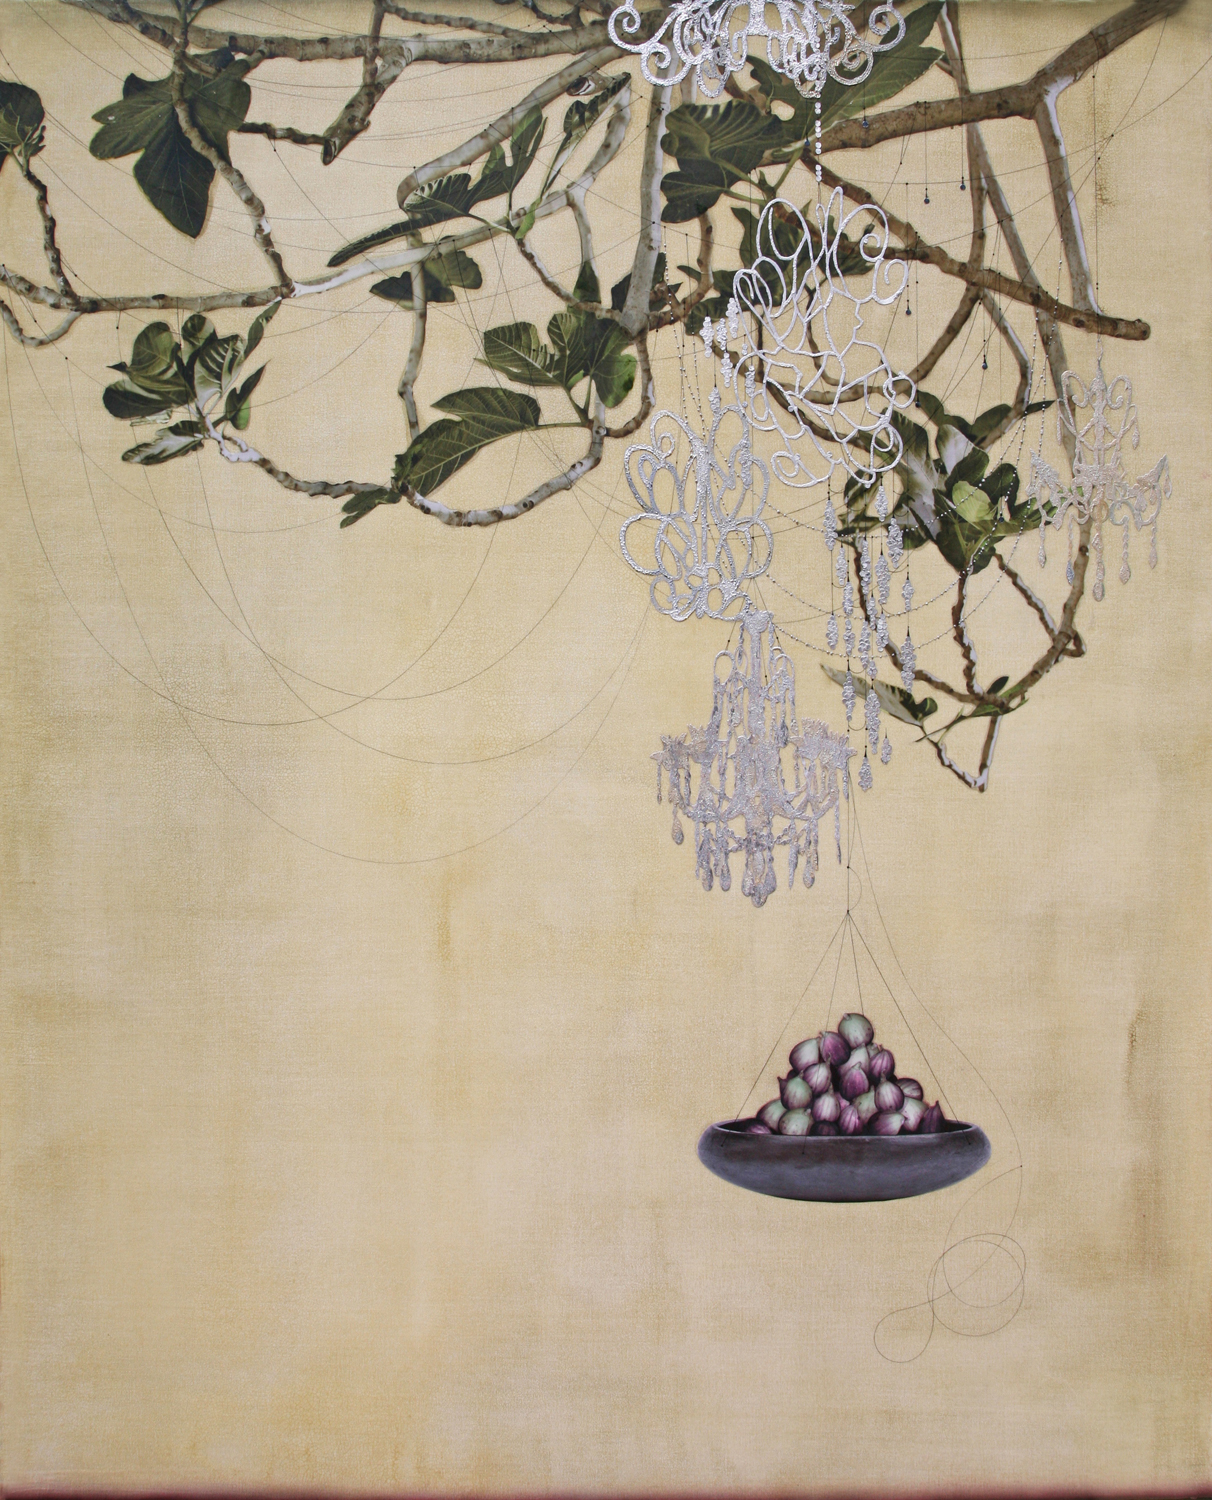 Figs and Chandeliers